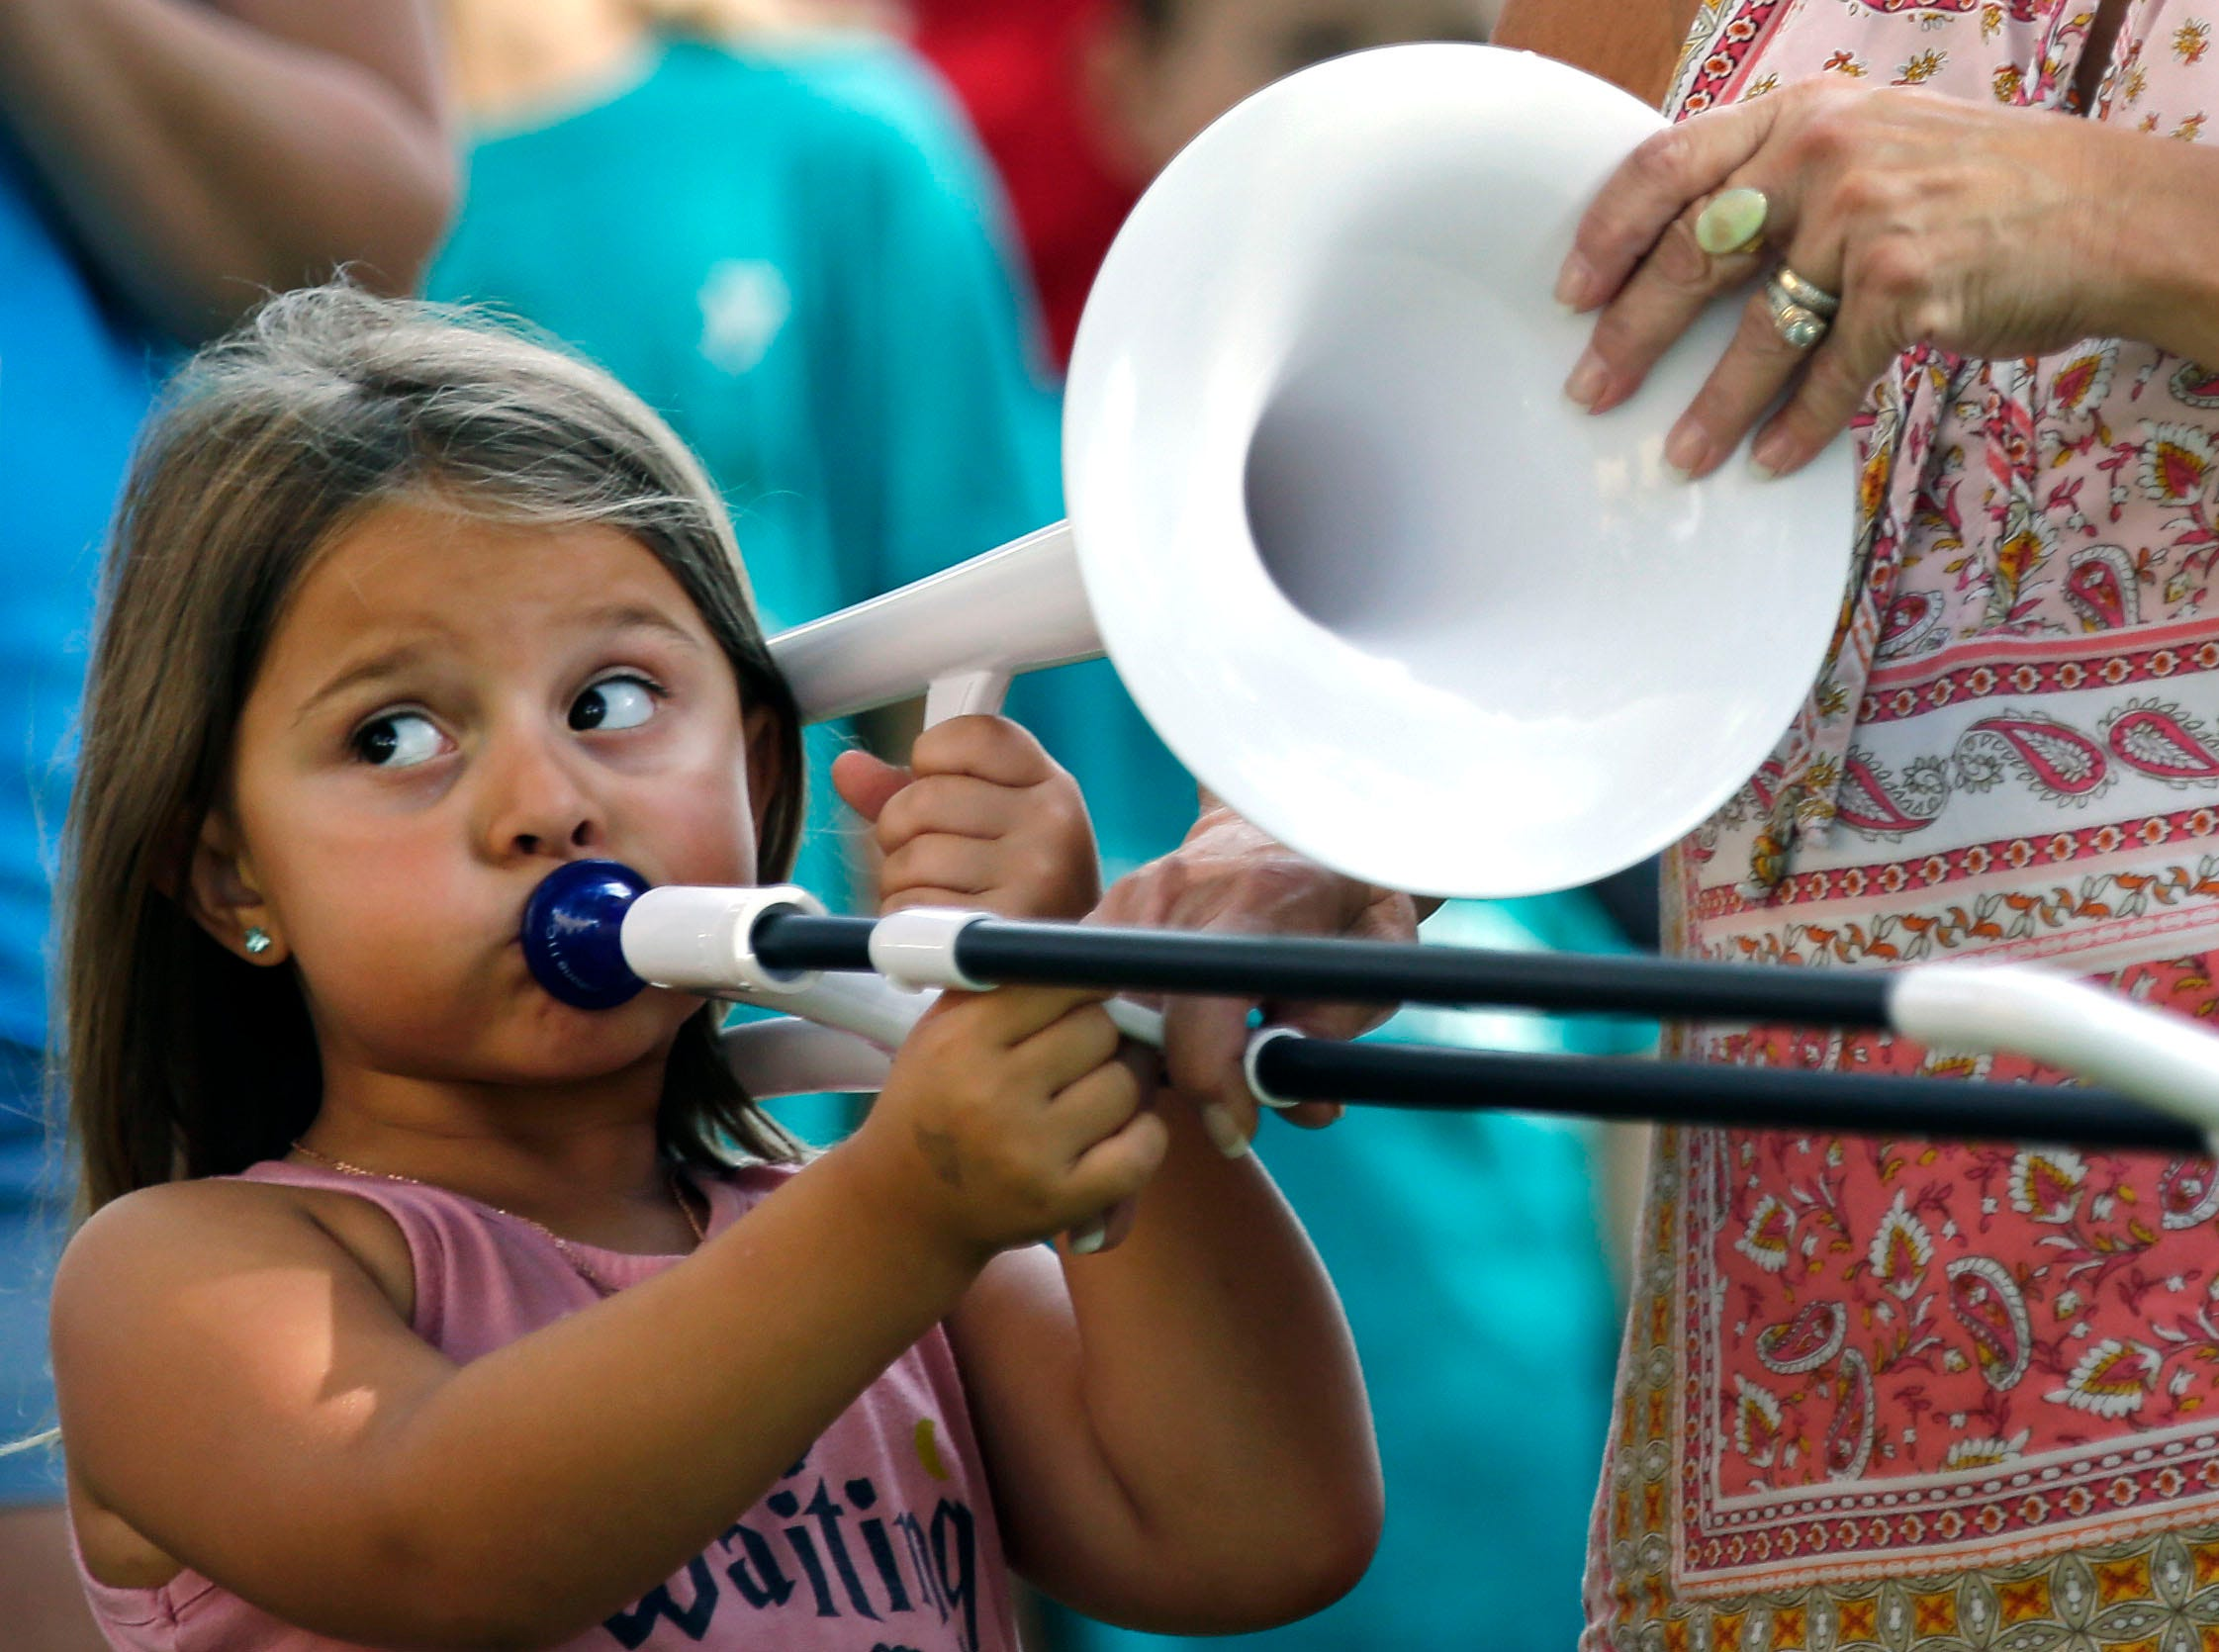 Elena Fiebelkorn gets helps holding the trombone from her grandmother, Suzi Perlewitz as Mile 6, the Mile of Music festival takes place Saturday, August 4, 2018, in Appleton, Wis.